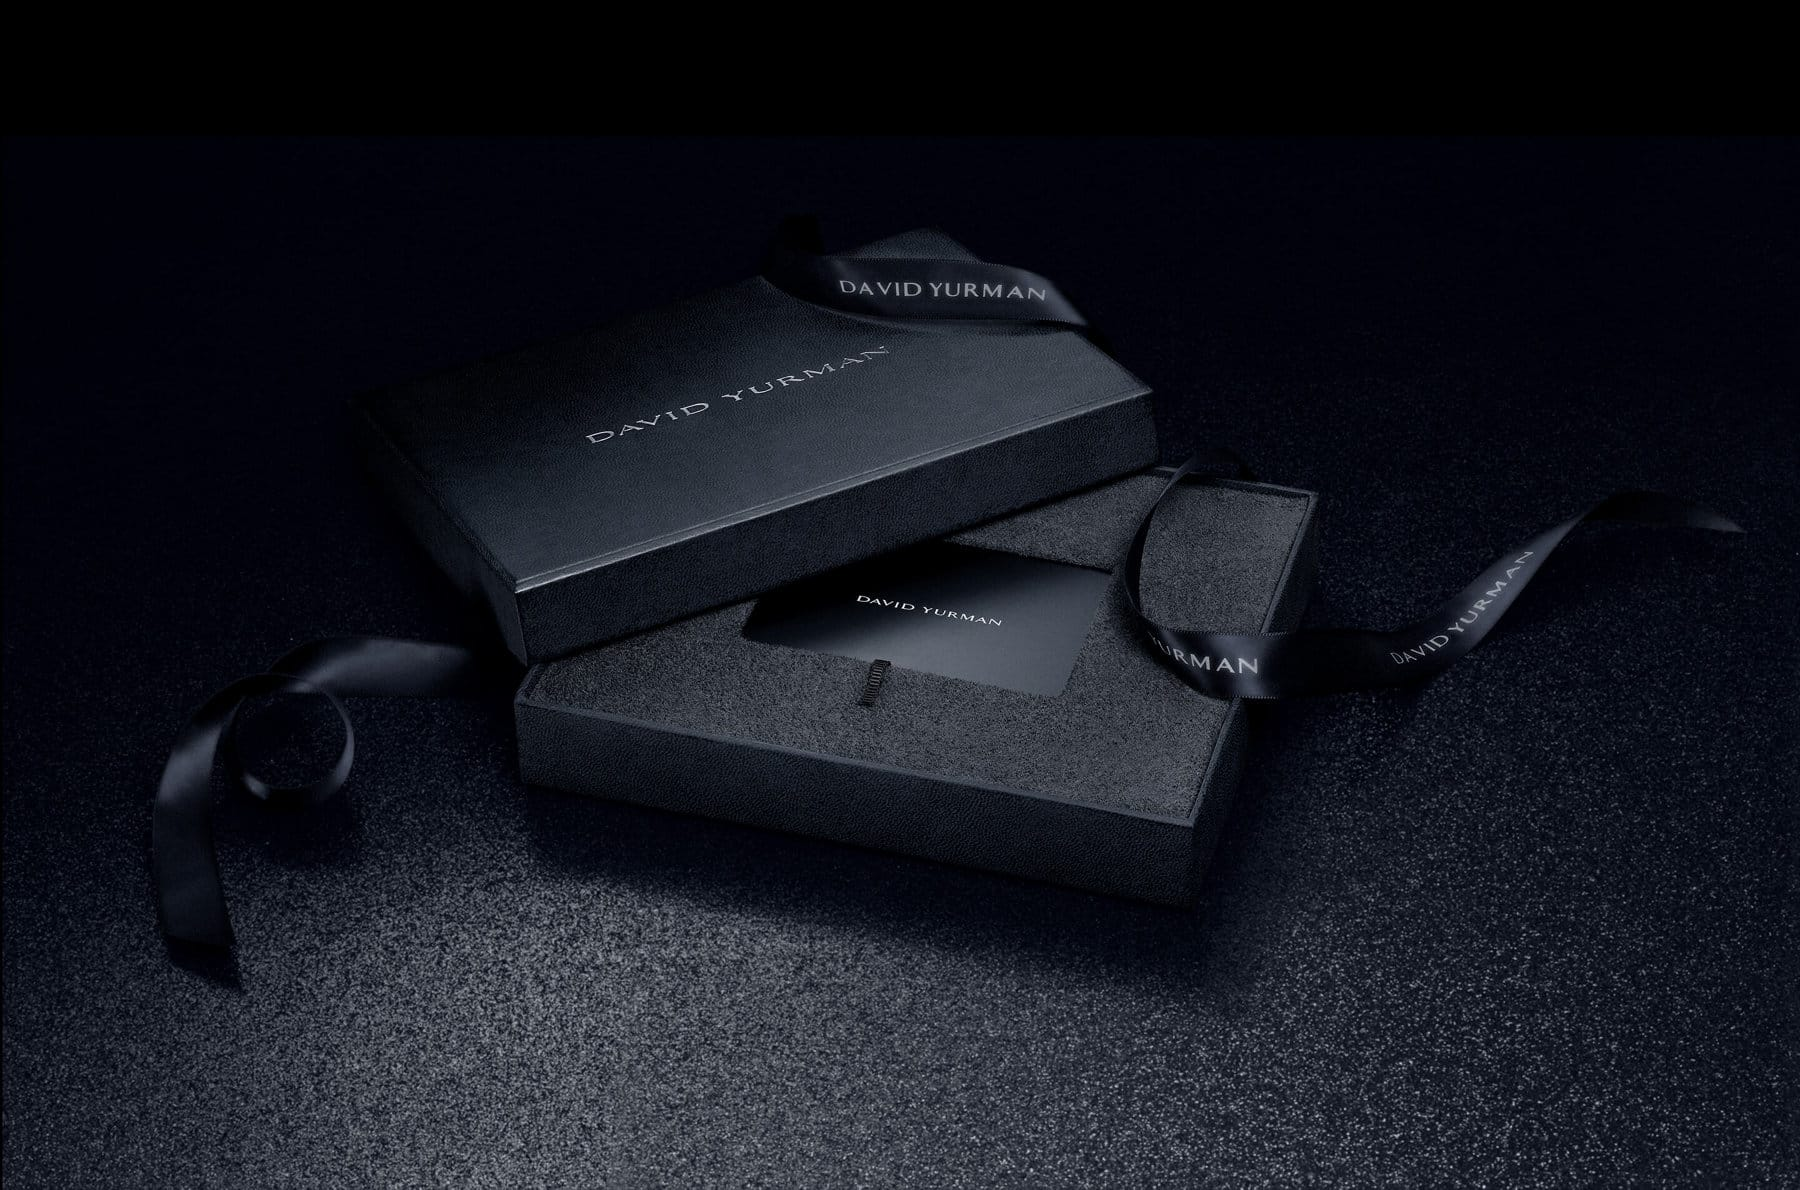 A color photograph shows a black gift card displaying only the David Yurman logo in white set inside a David Yurman gift box draped with a navy David Yurman ribbon. The packaging and gift card are shown in a ray of light on top of a black stone surface.